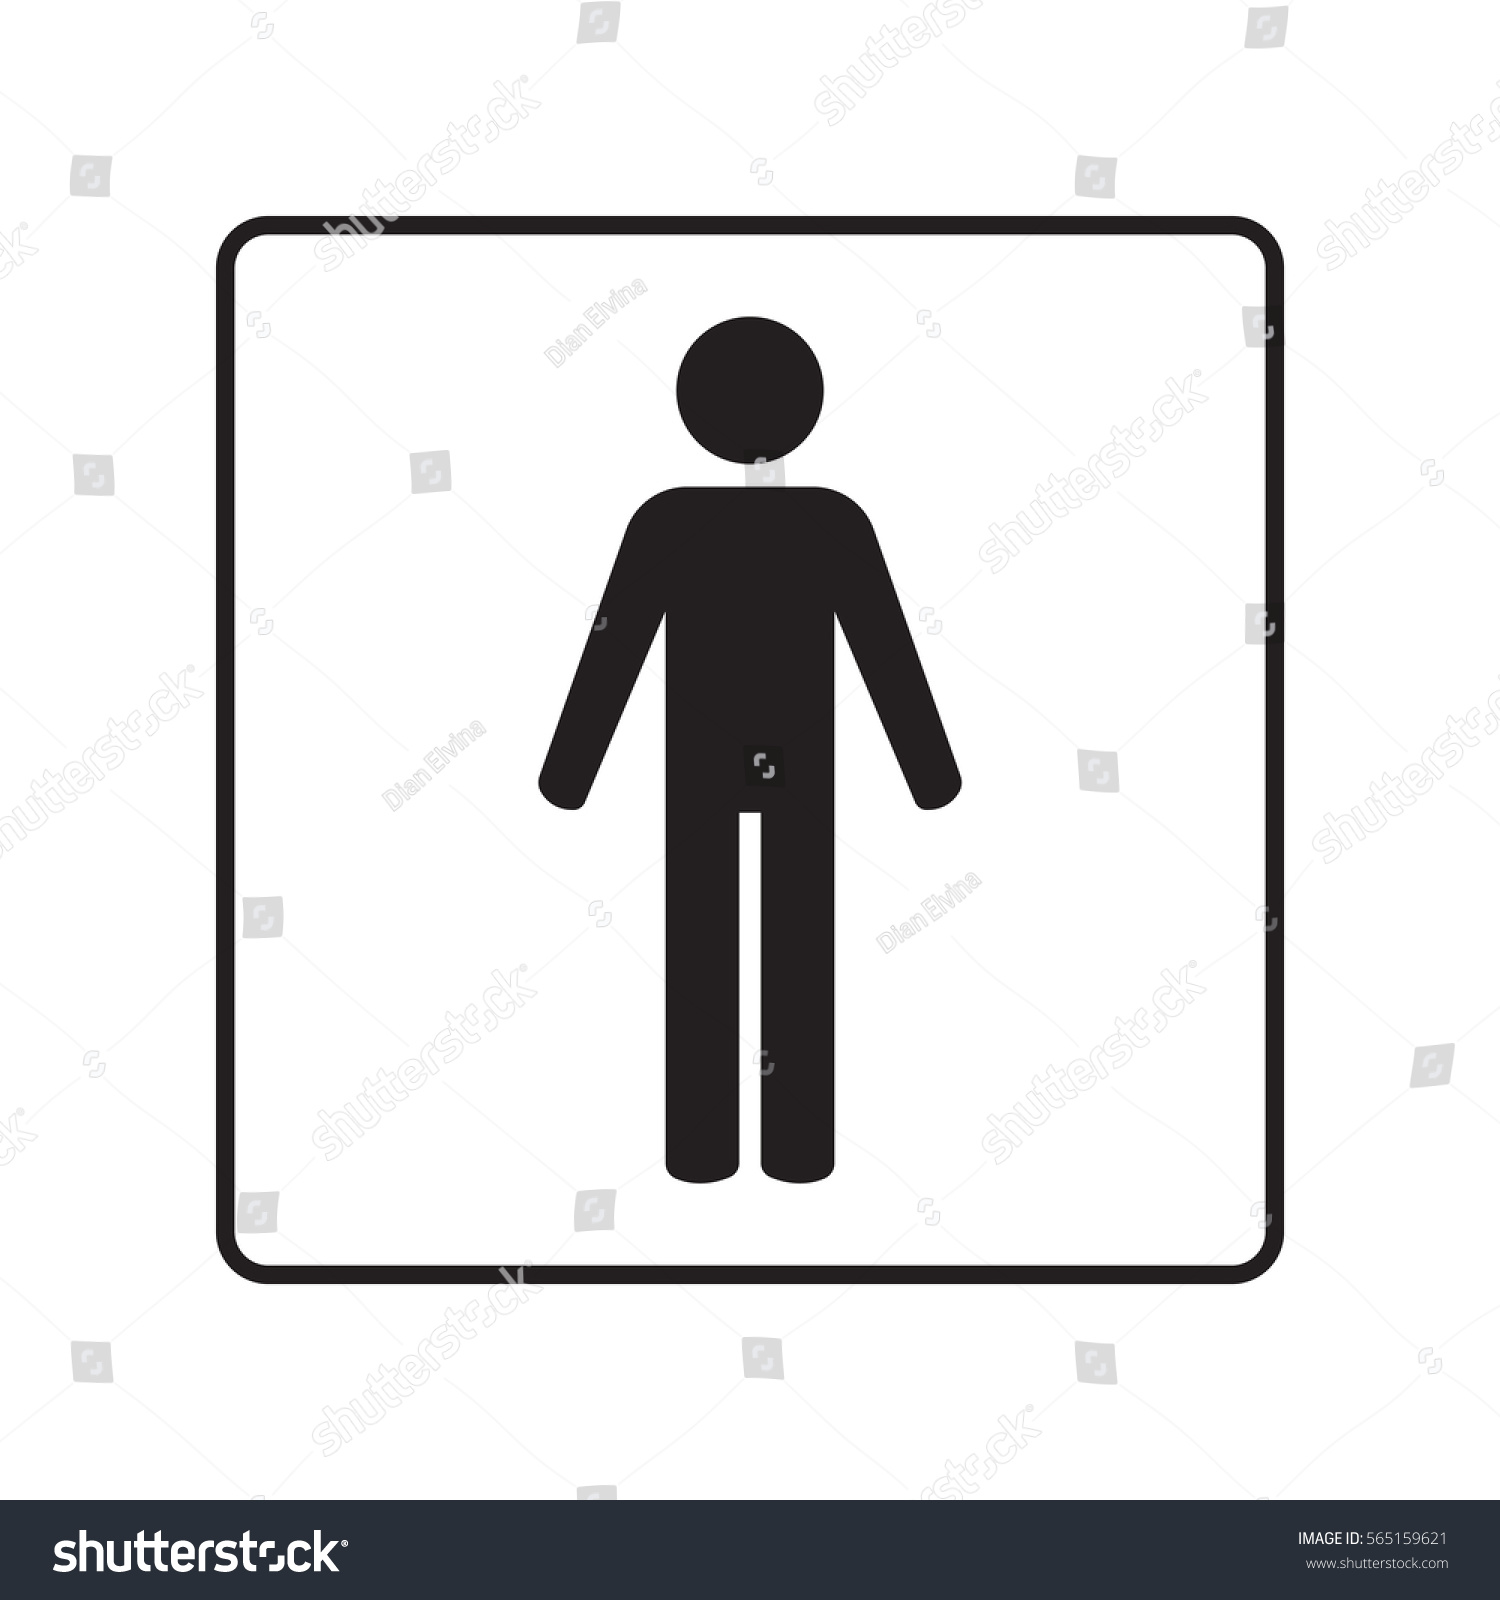 Men toilet sign stock vector 565159621 shutterstock men toilet sign biocorpaavc Choice Image